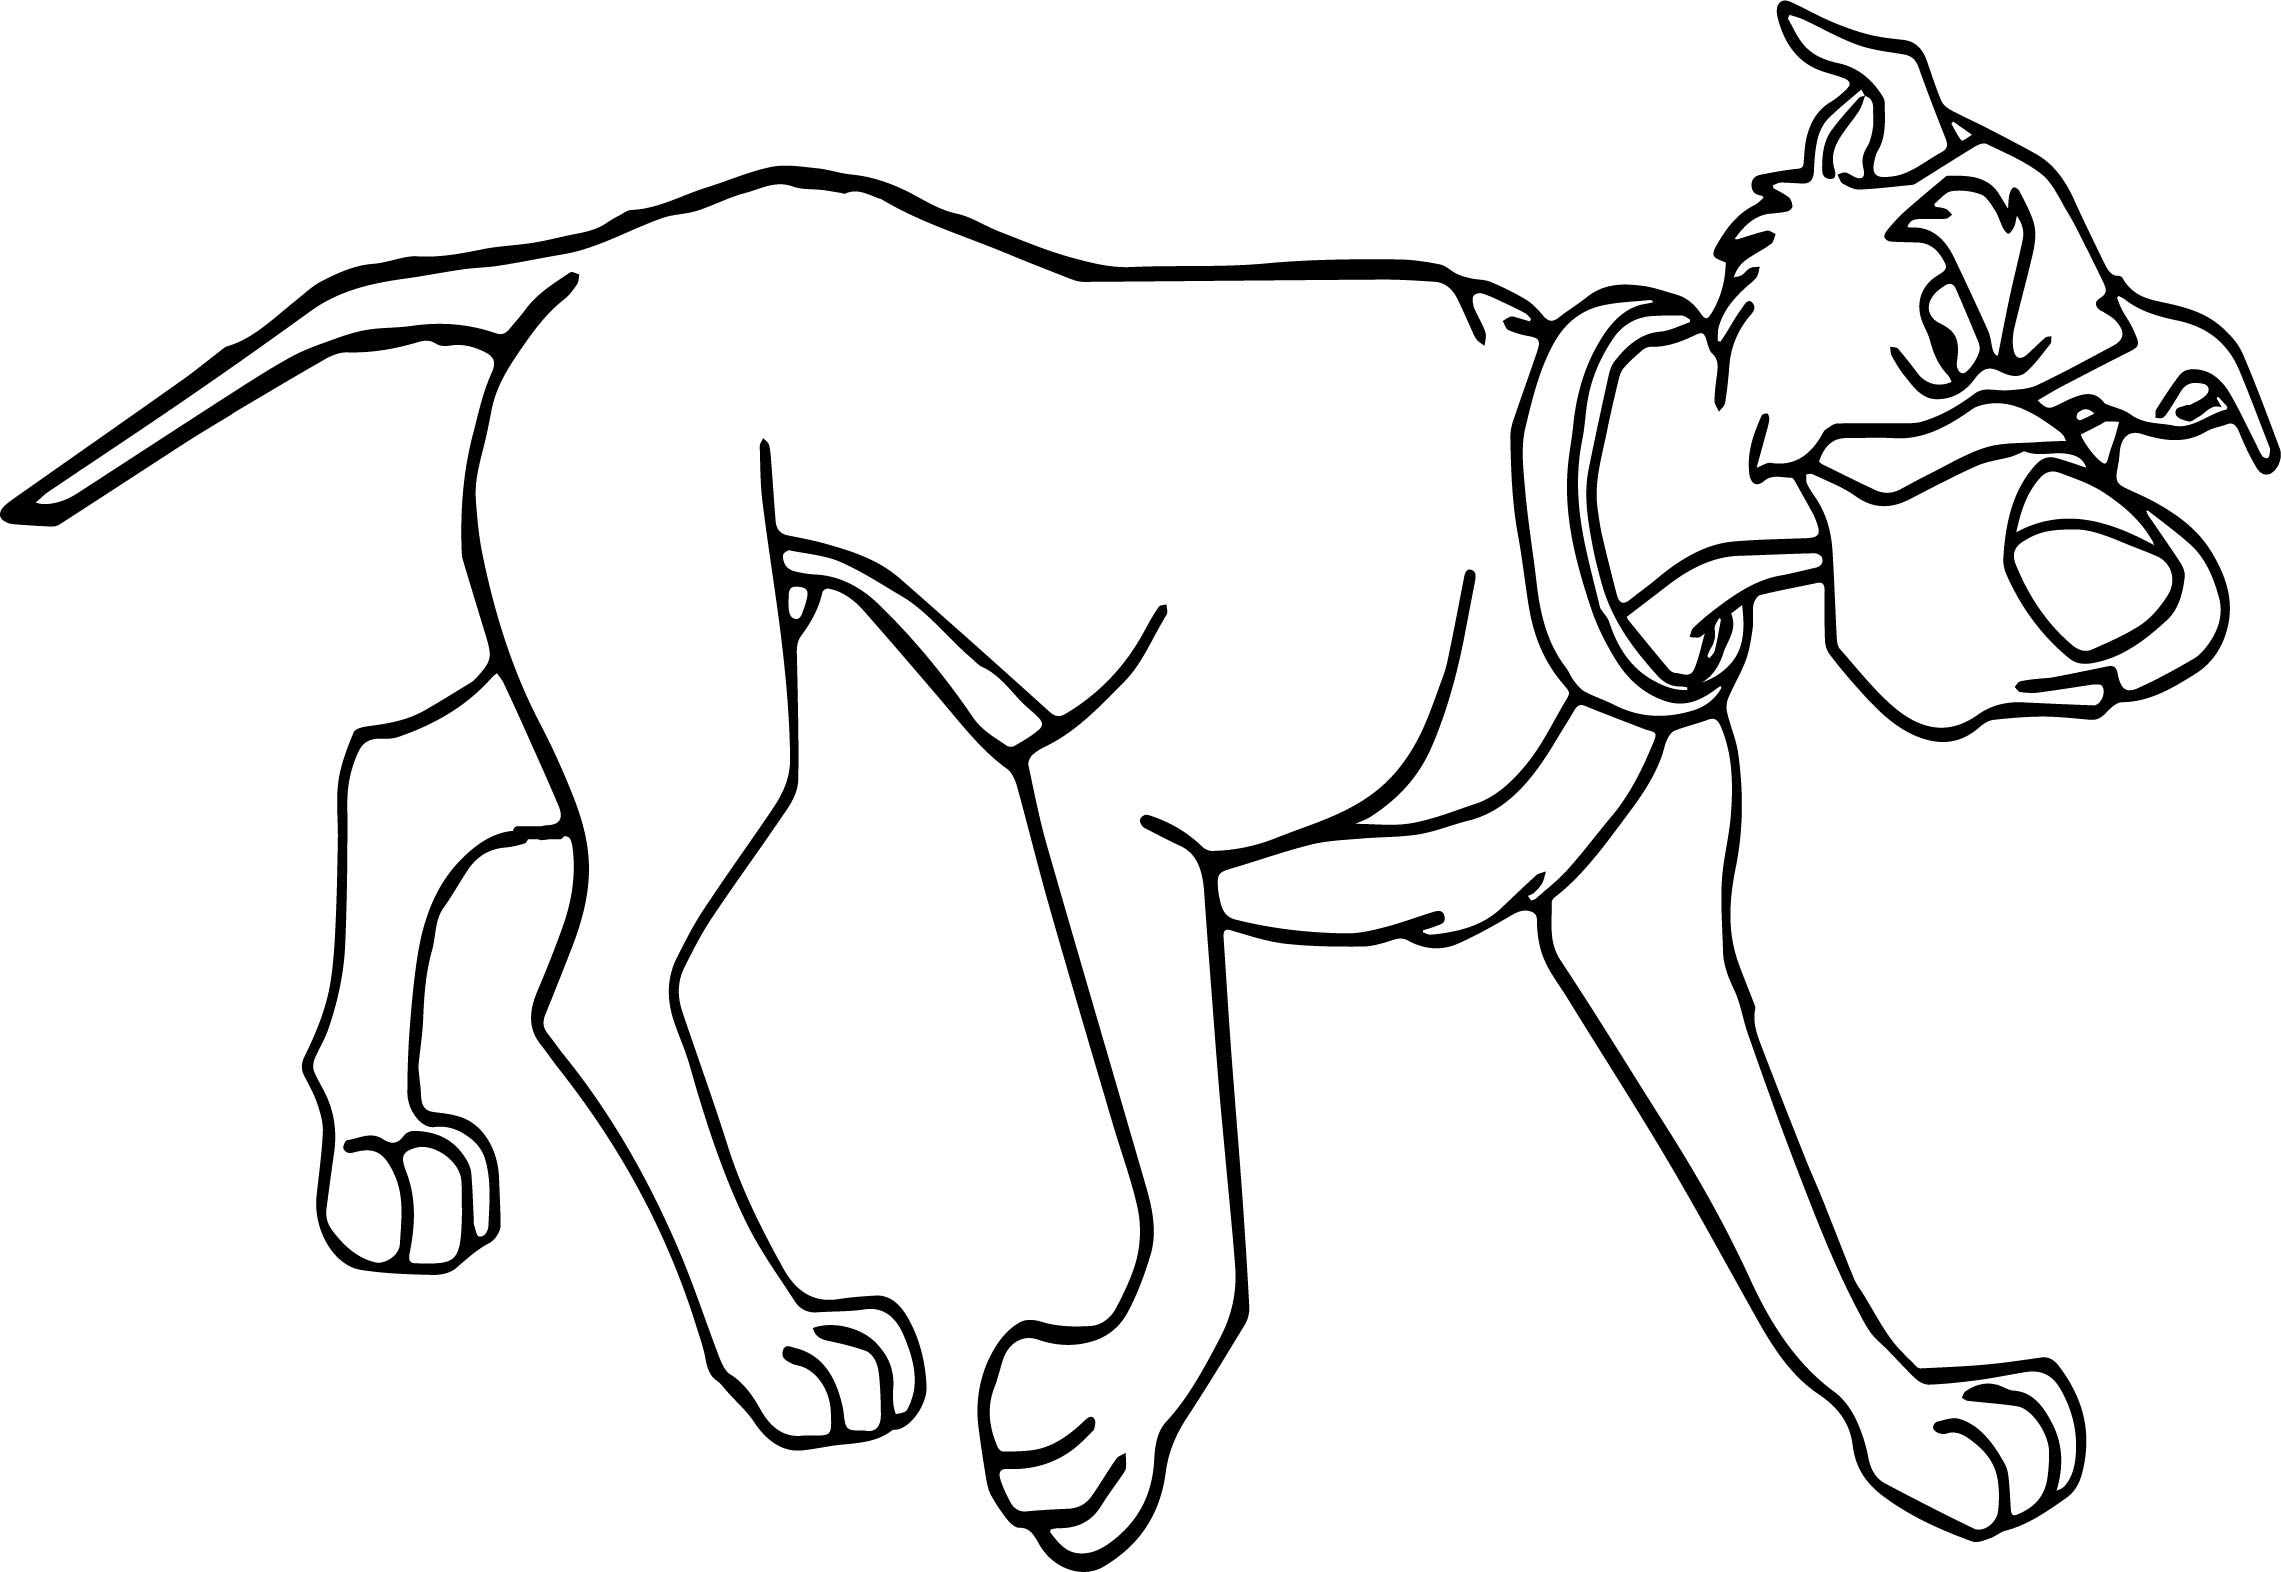 Dog Chief Coloring Page | Wecoloringpage.com